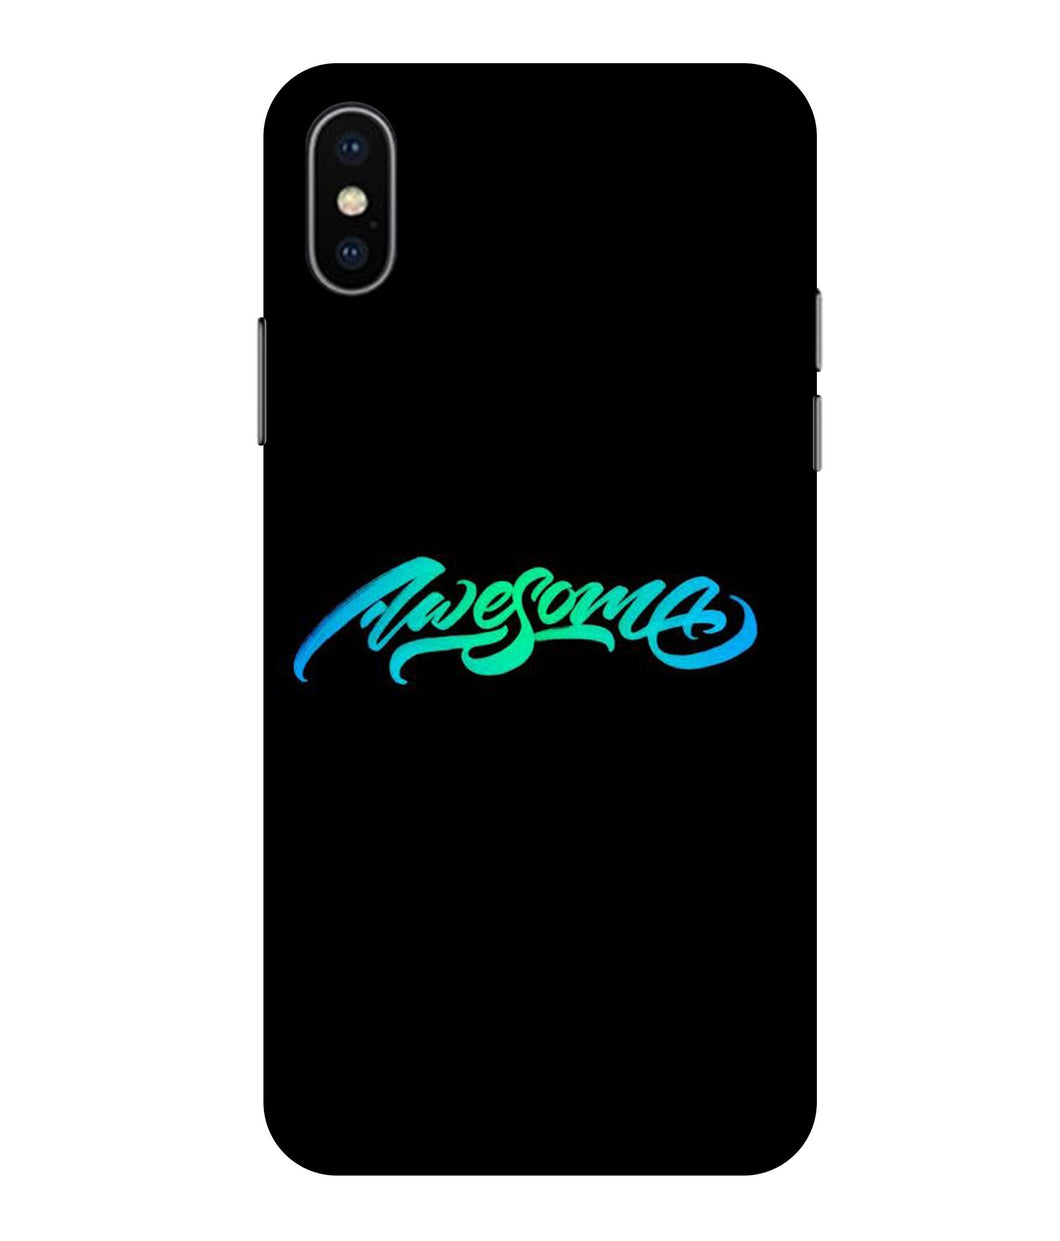 Apple Iphone Xs Max Awesome Mobile cover